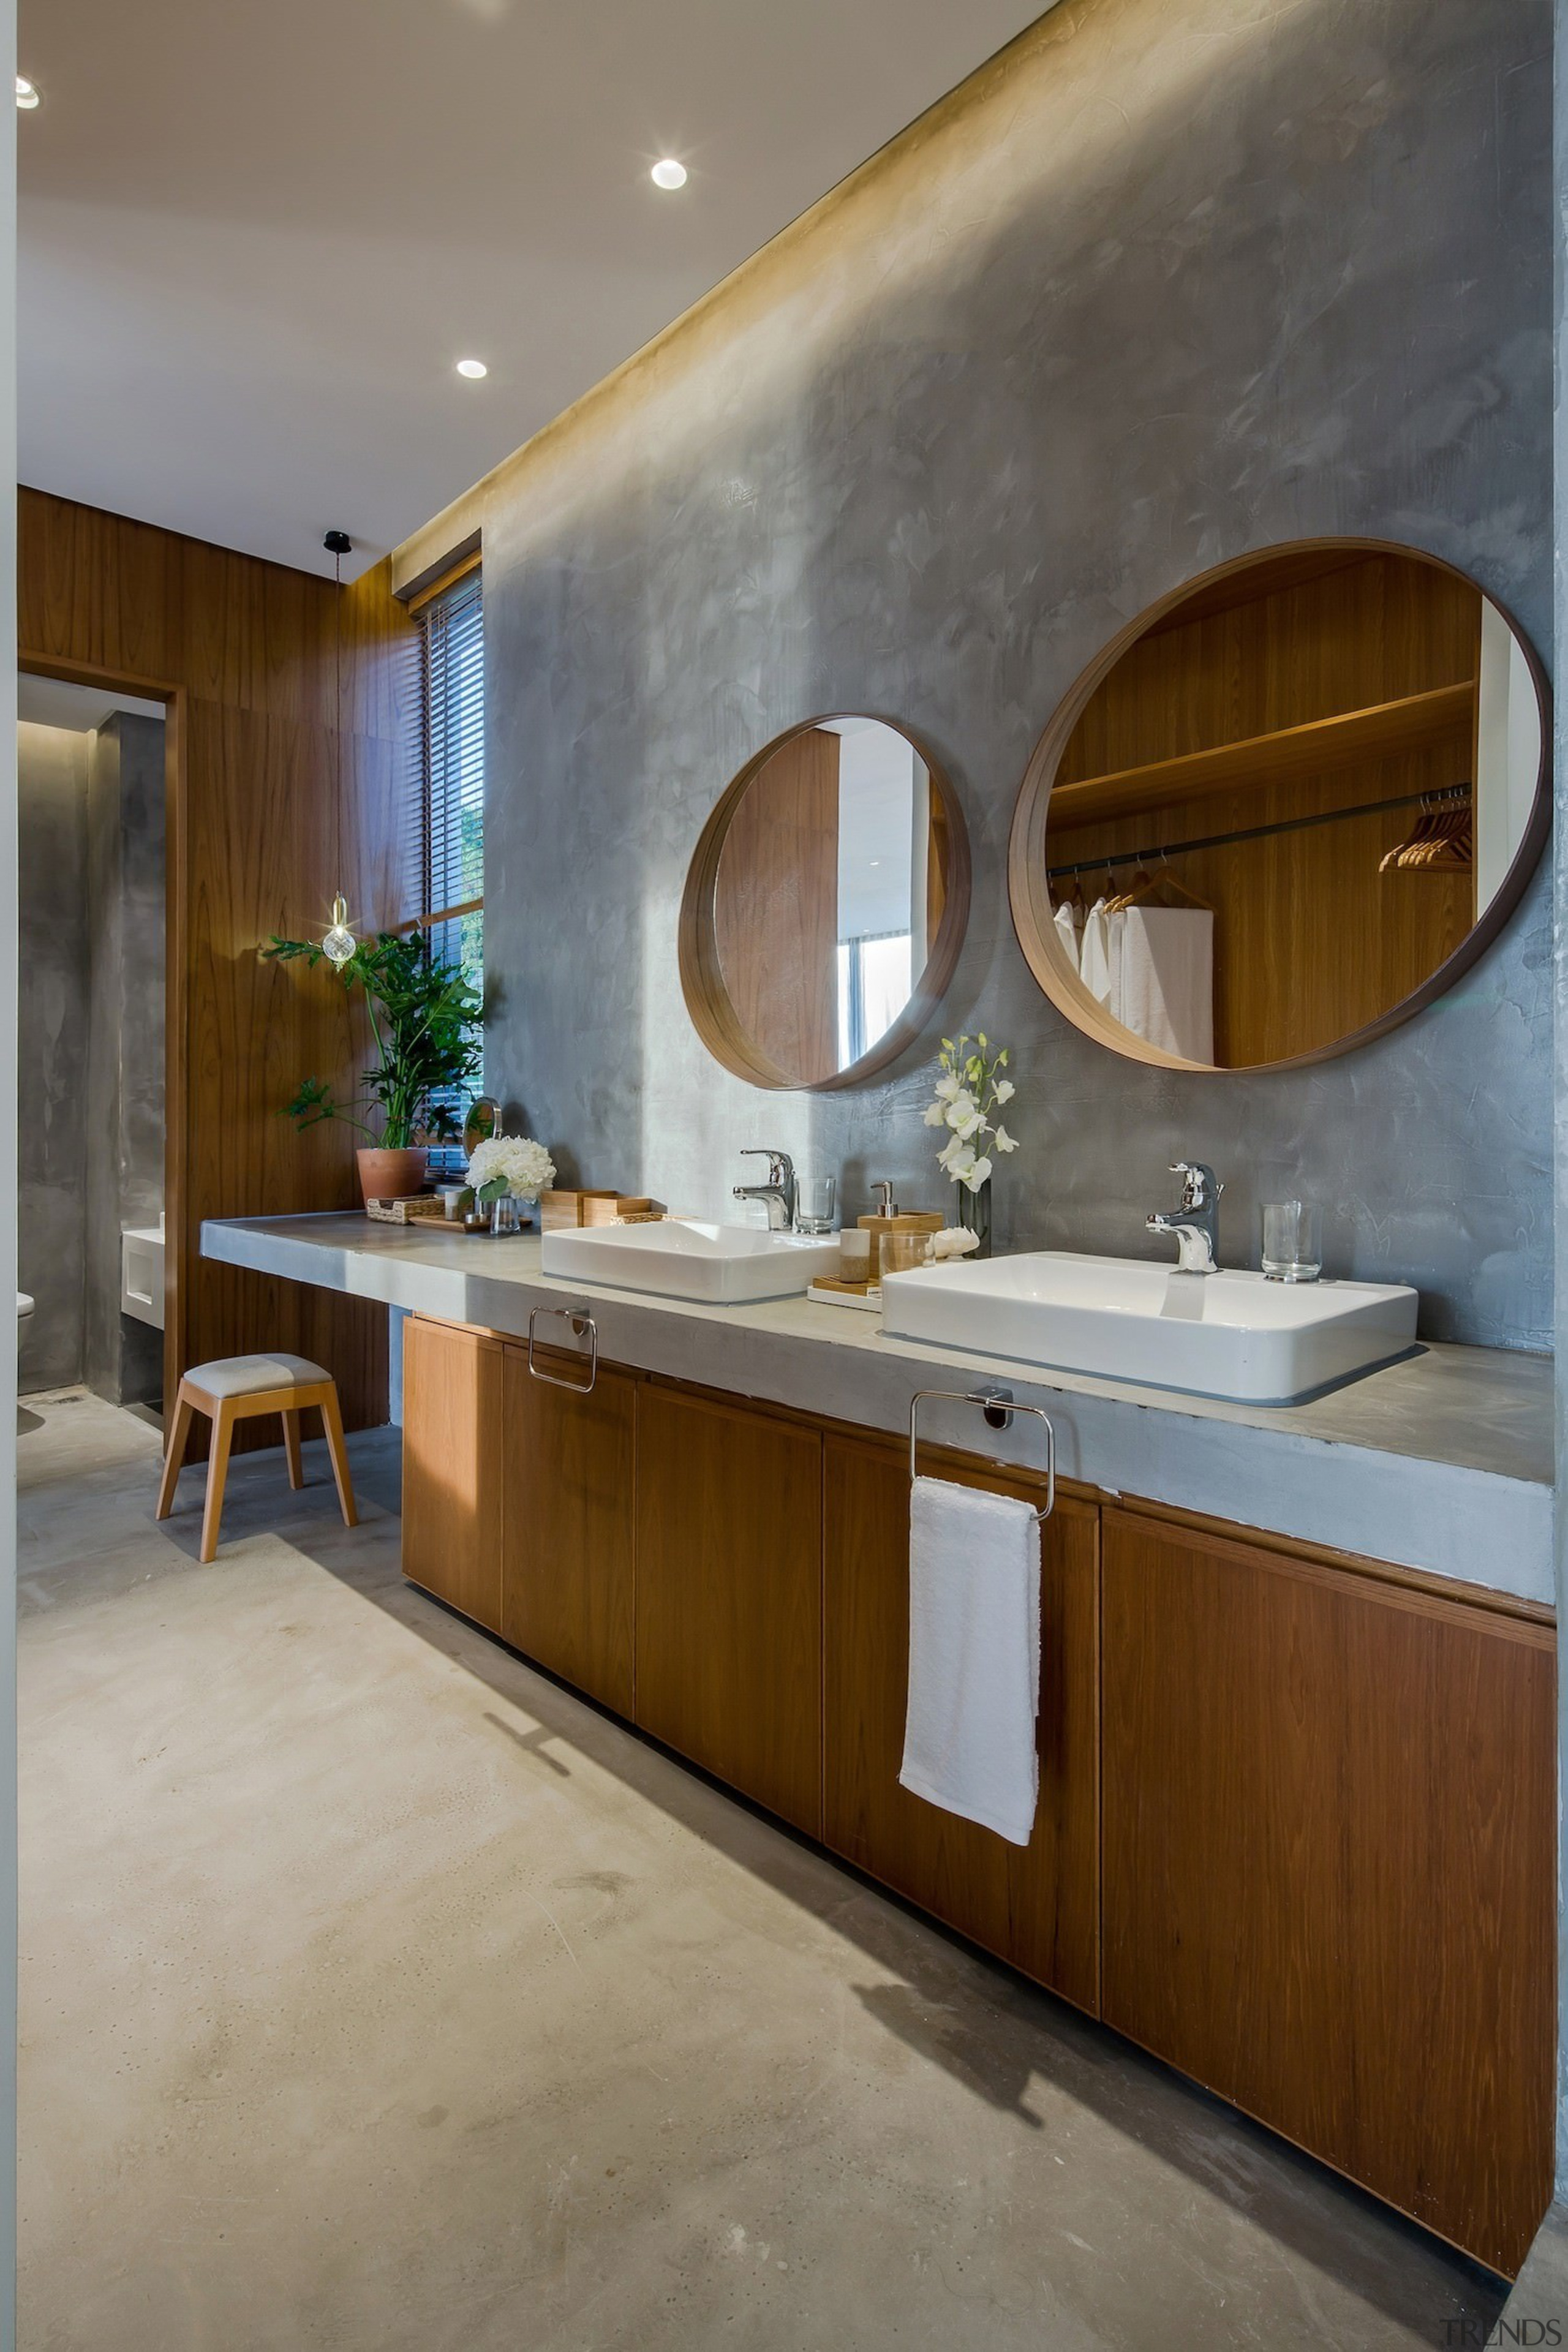 Recessed lighting sits in the ceiling above the bathroom, cabinetry, countertop, interior design, kitchen, room, sink, gray, brown